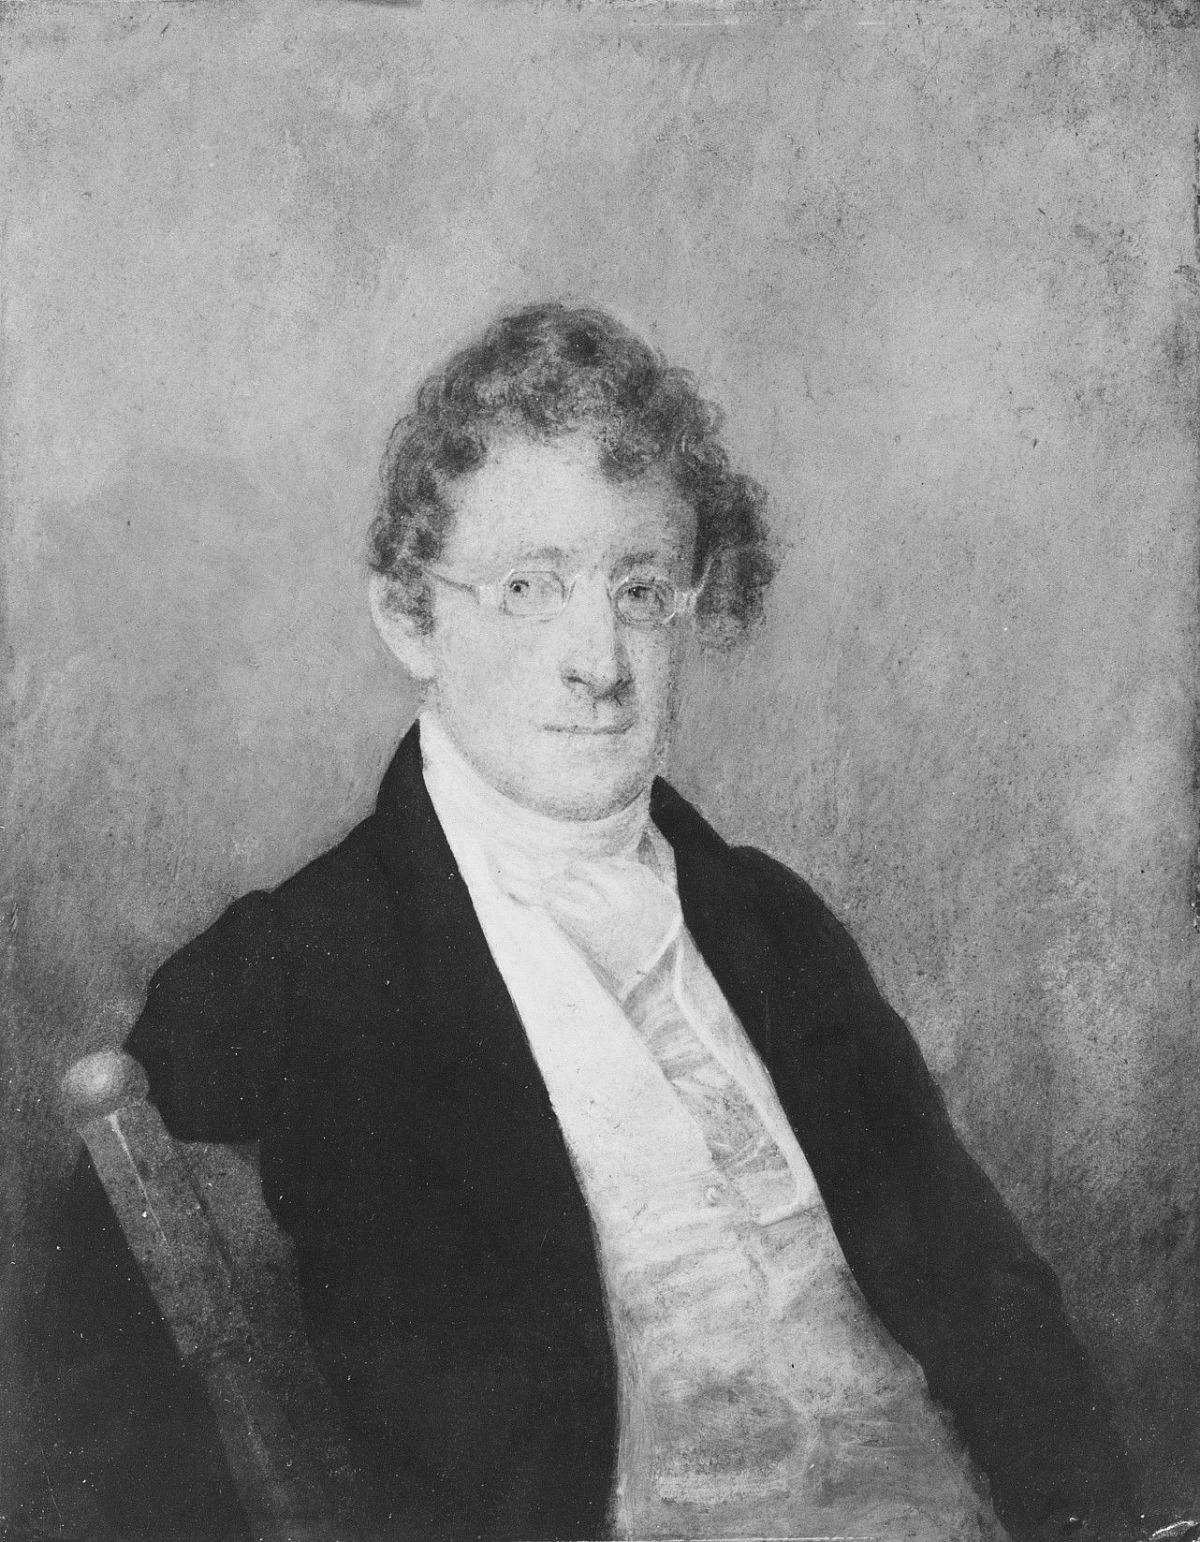 Thomas Macdonough by Joseph Wood